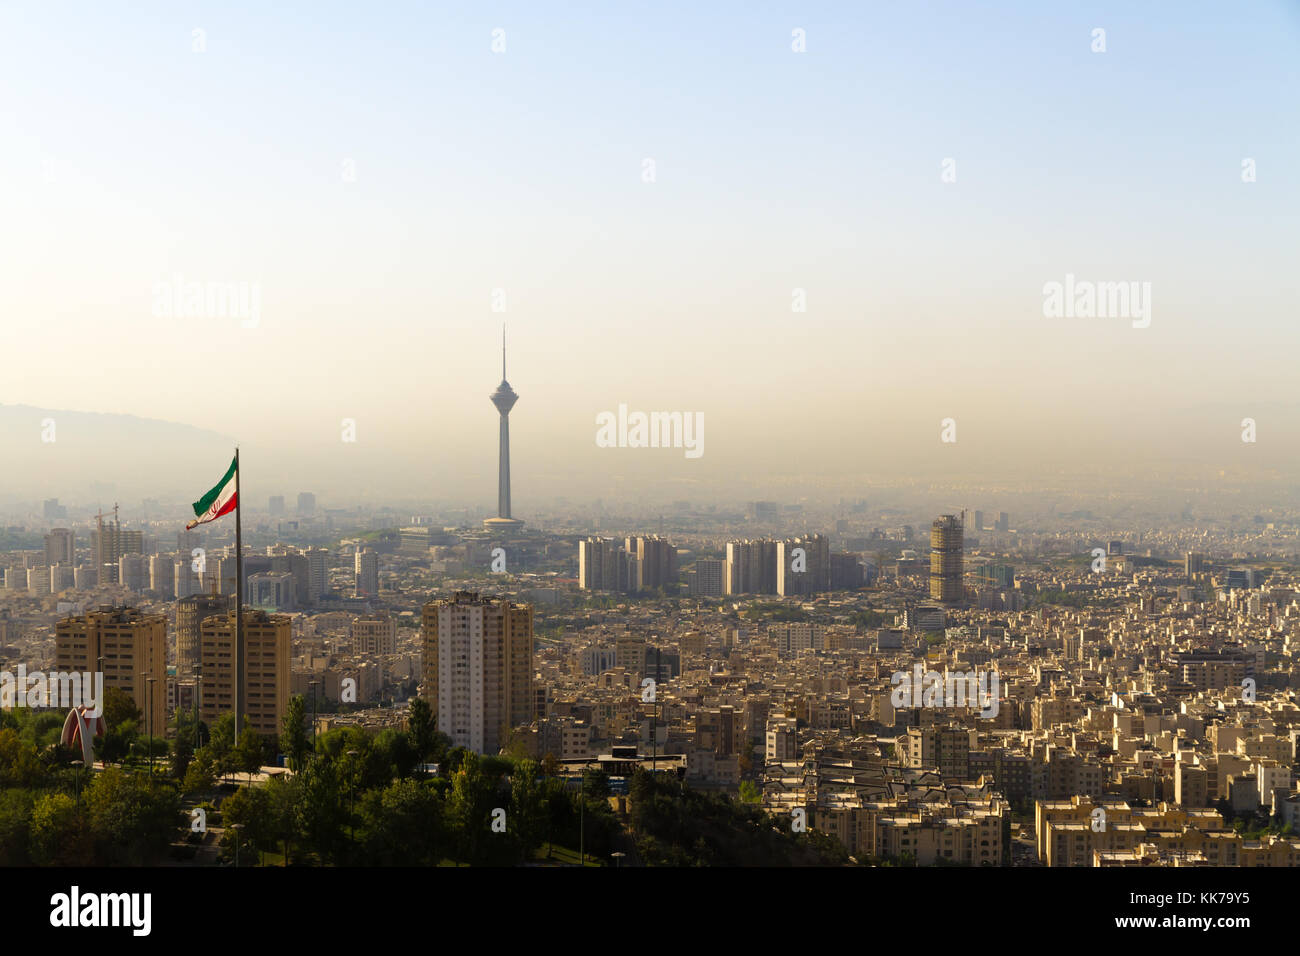 Tehran city skyline with Iranian flag and Milad Tower (Borj-e Milad landmark, hight 435 m.). - Stock Image